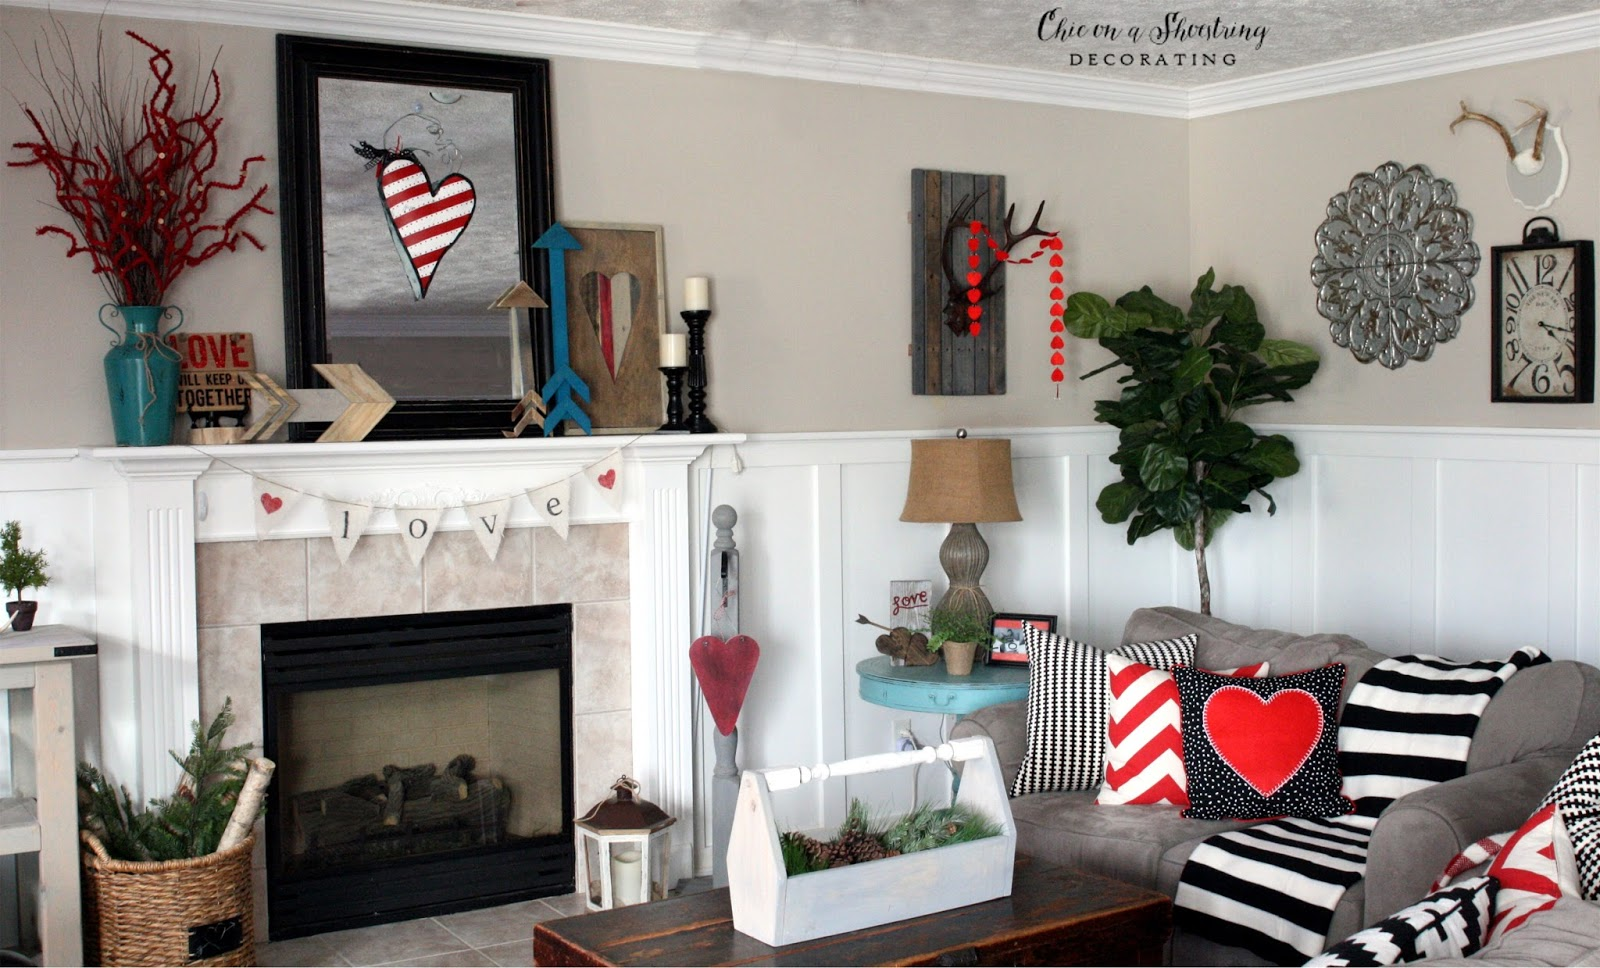 Chic On A Shoestring Decorating: Farmhouse Valentine's Day